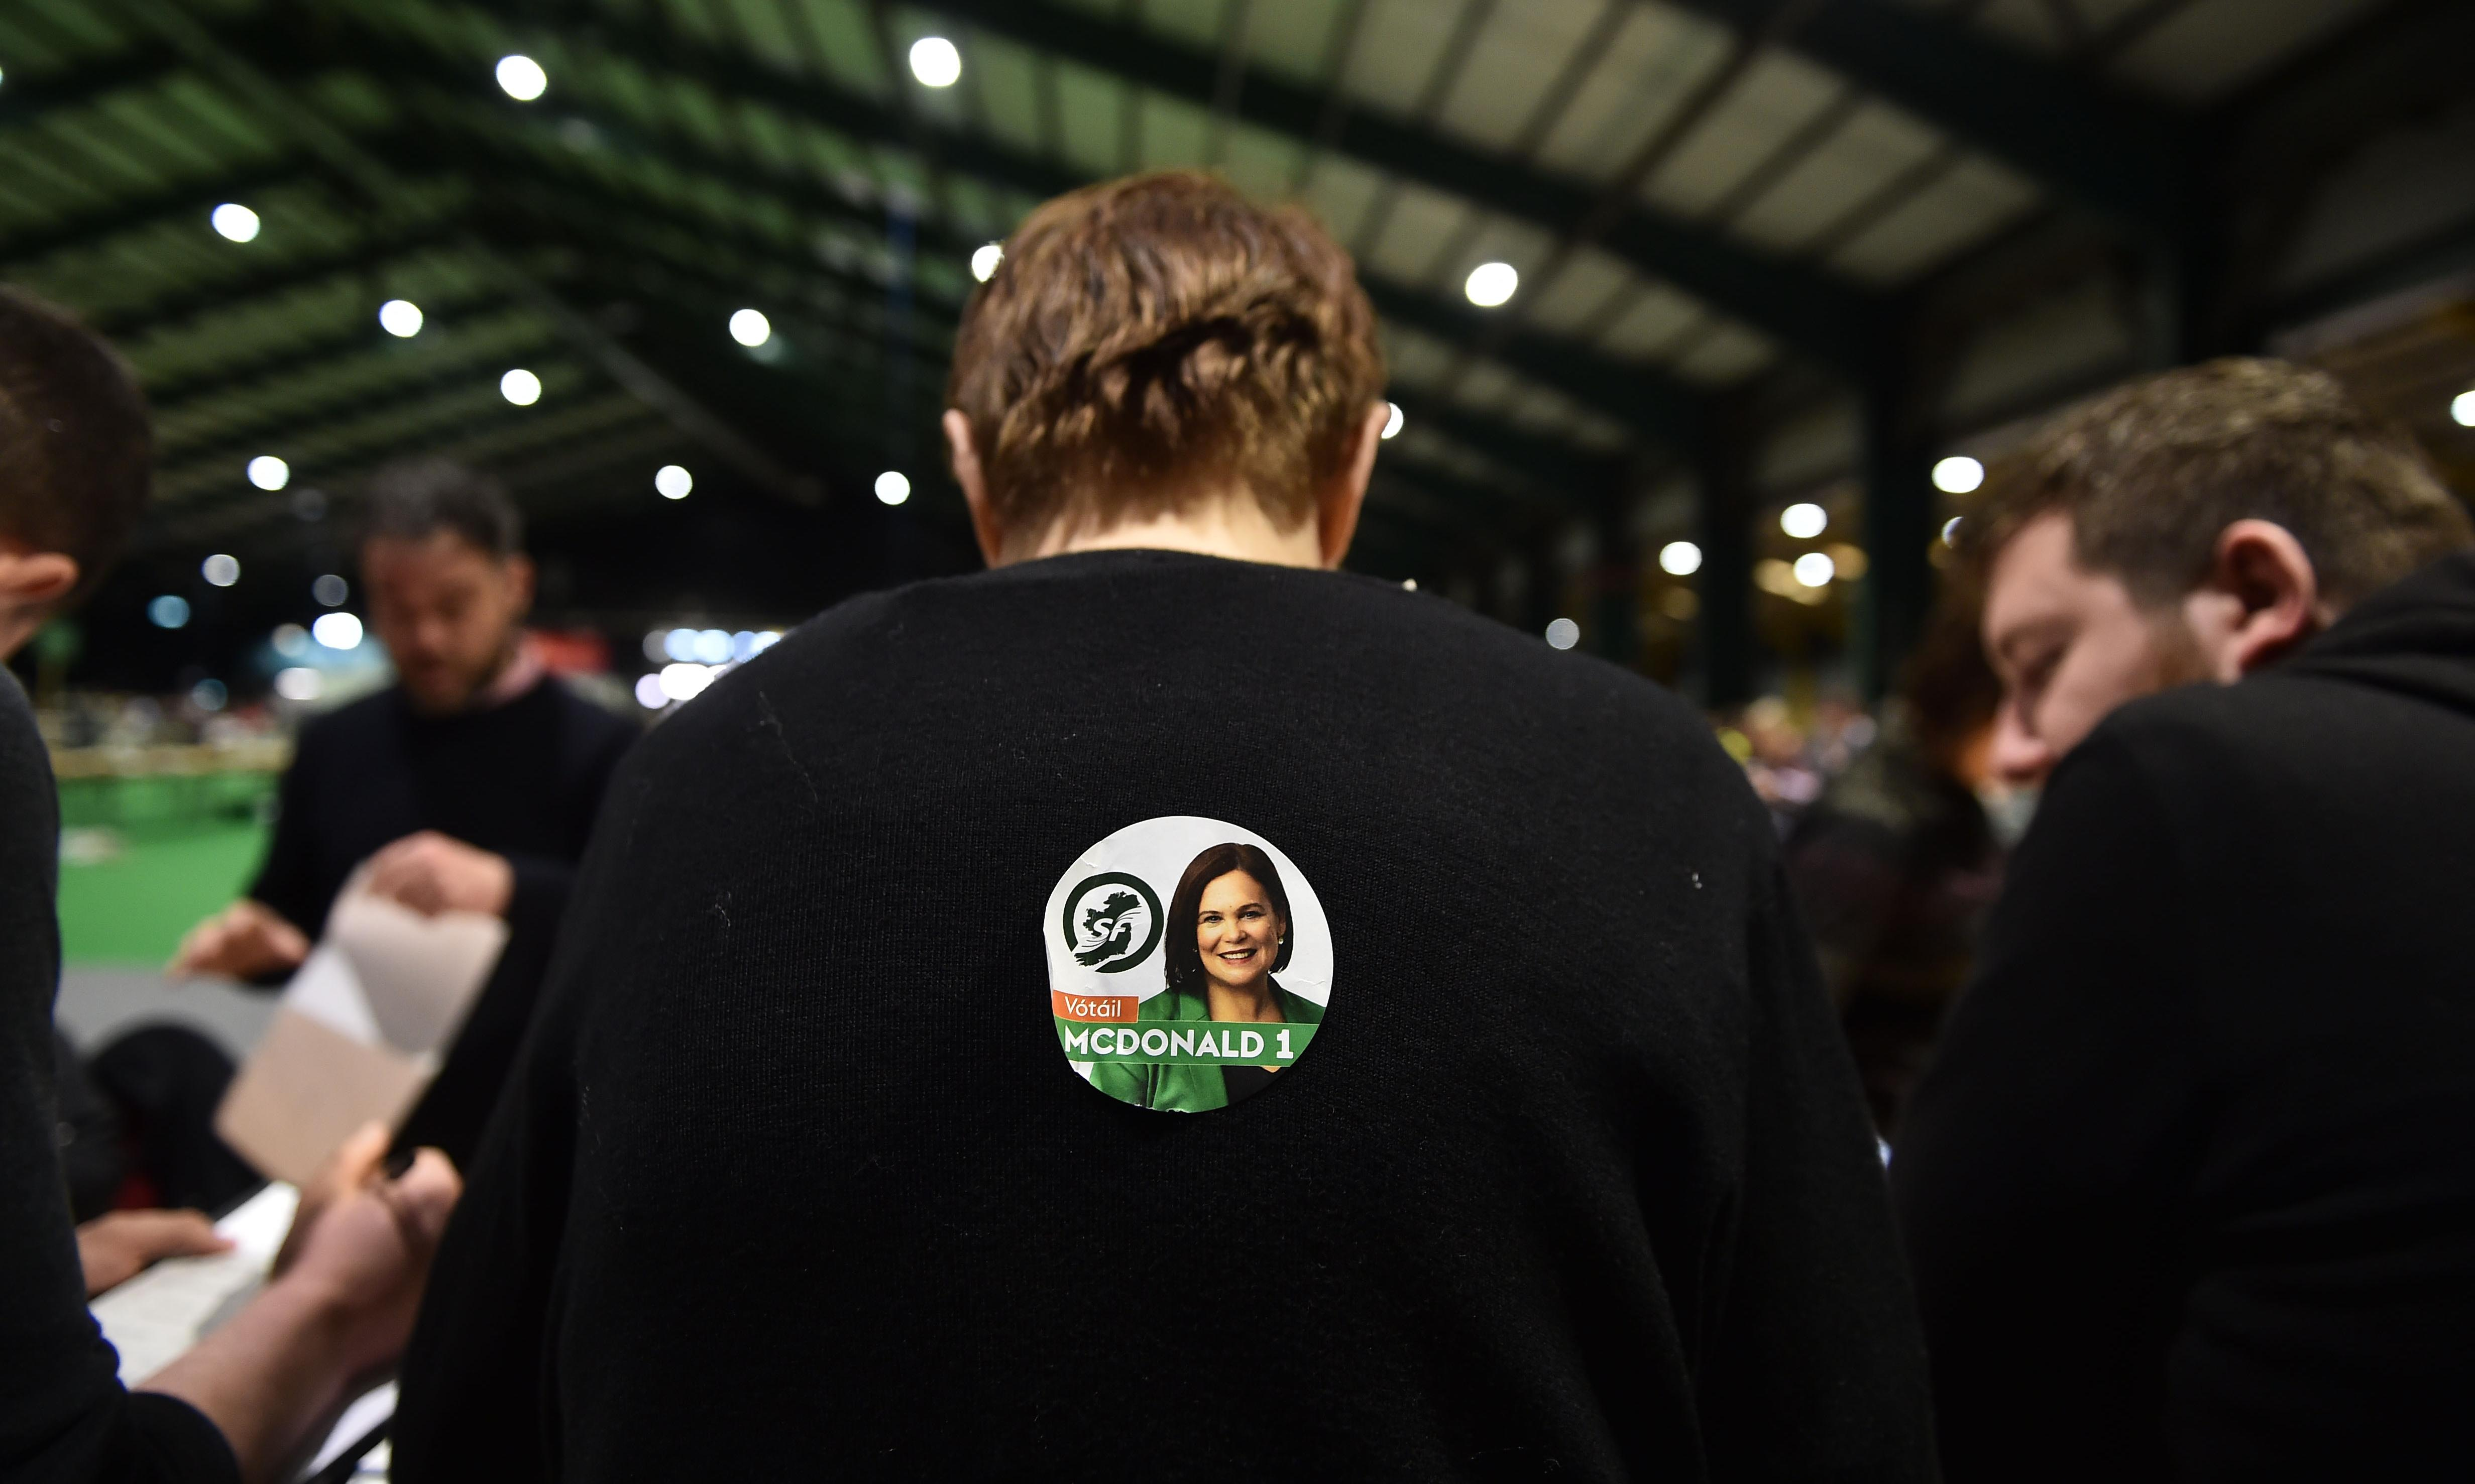 Tired of a two-party system, Irish voters have made Sinn Féin mainstream